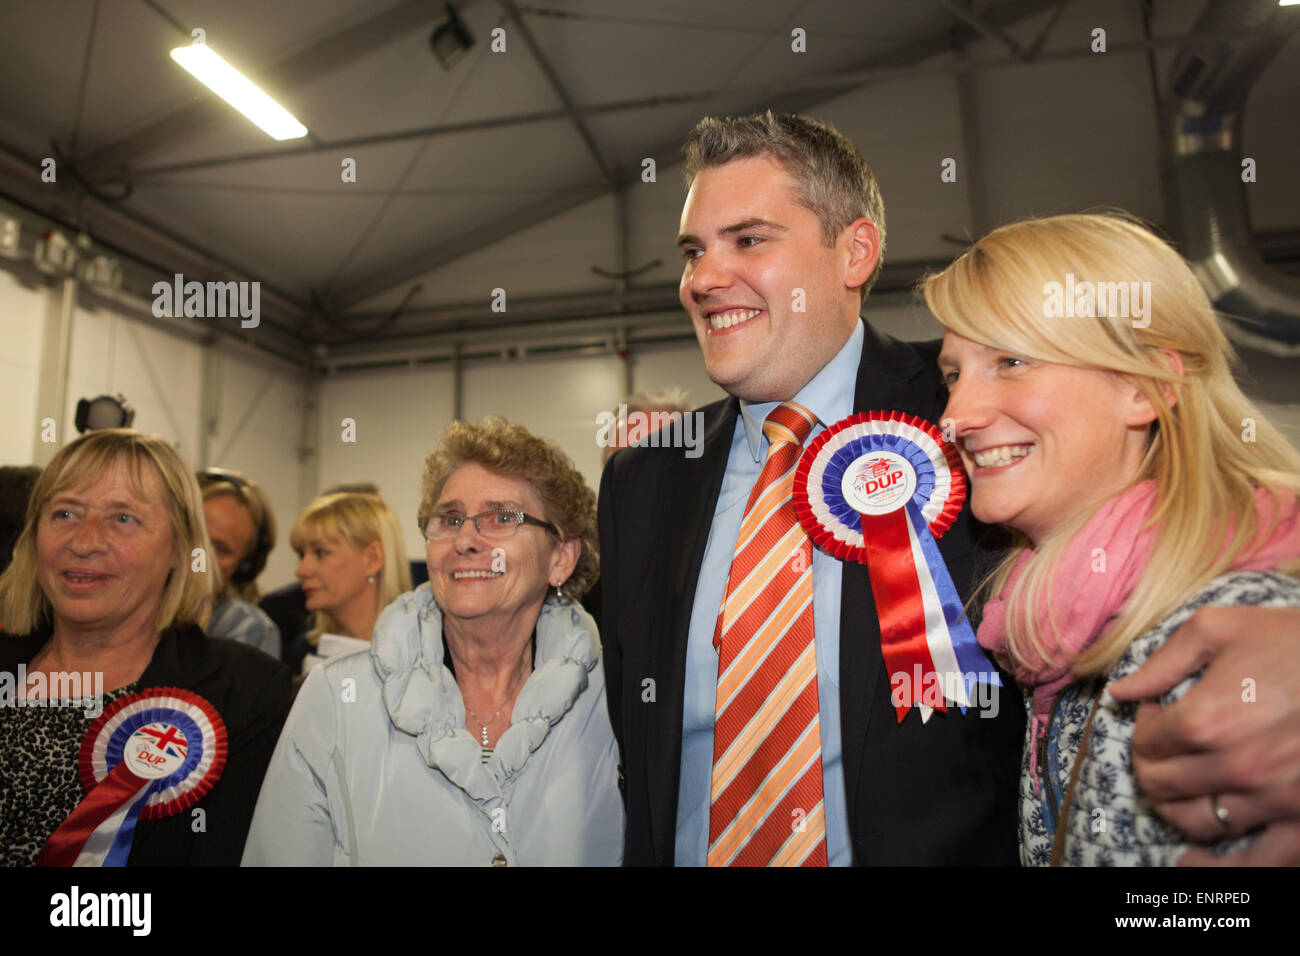 Belfast UK. 7th May 2015 General Election:  Gavin Robinson from the Democratic Unionist Party (DUP) with wife Linsey - Stock Image